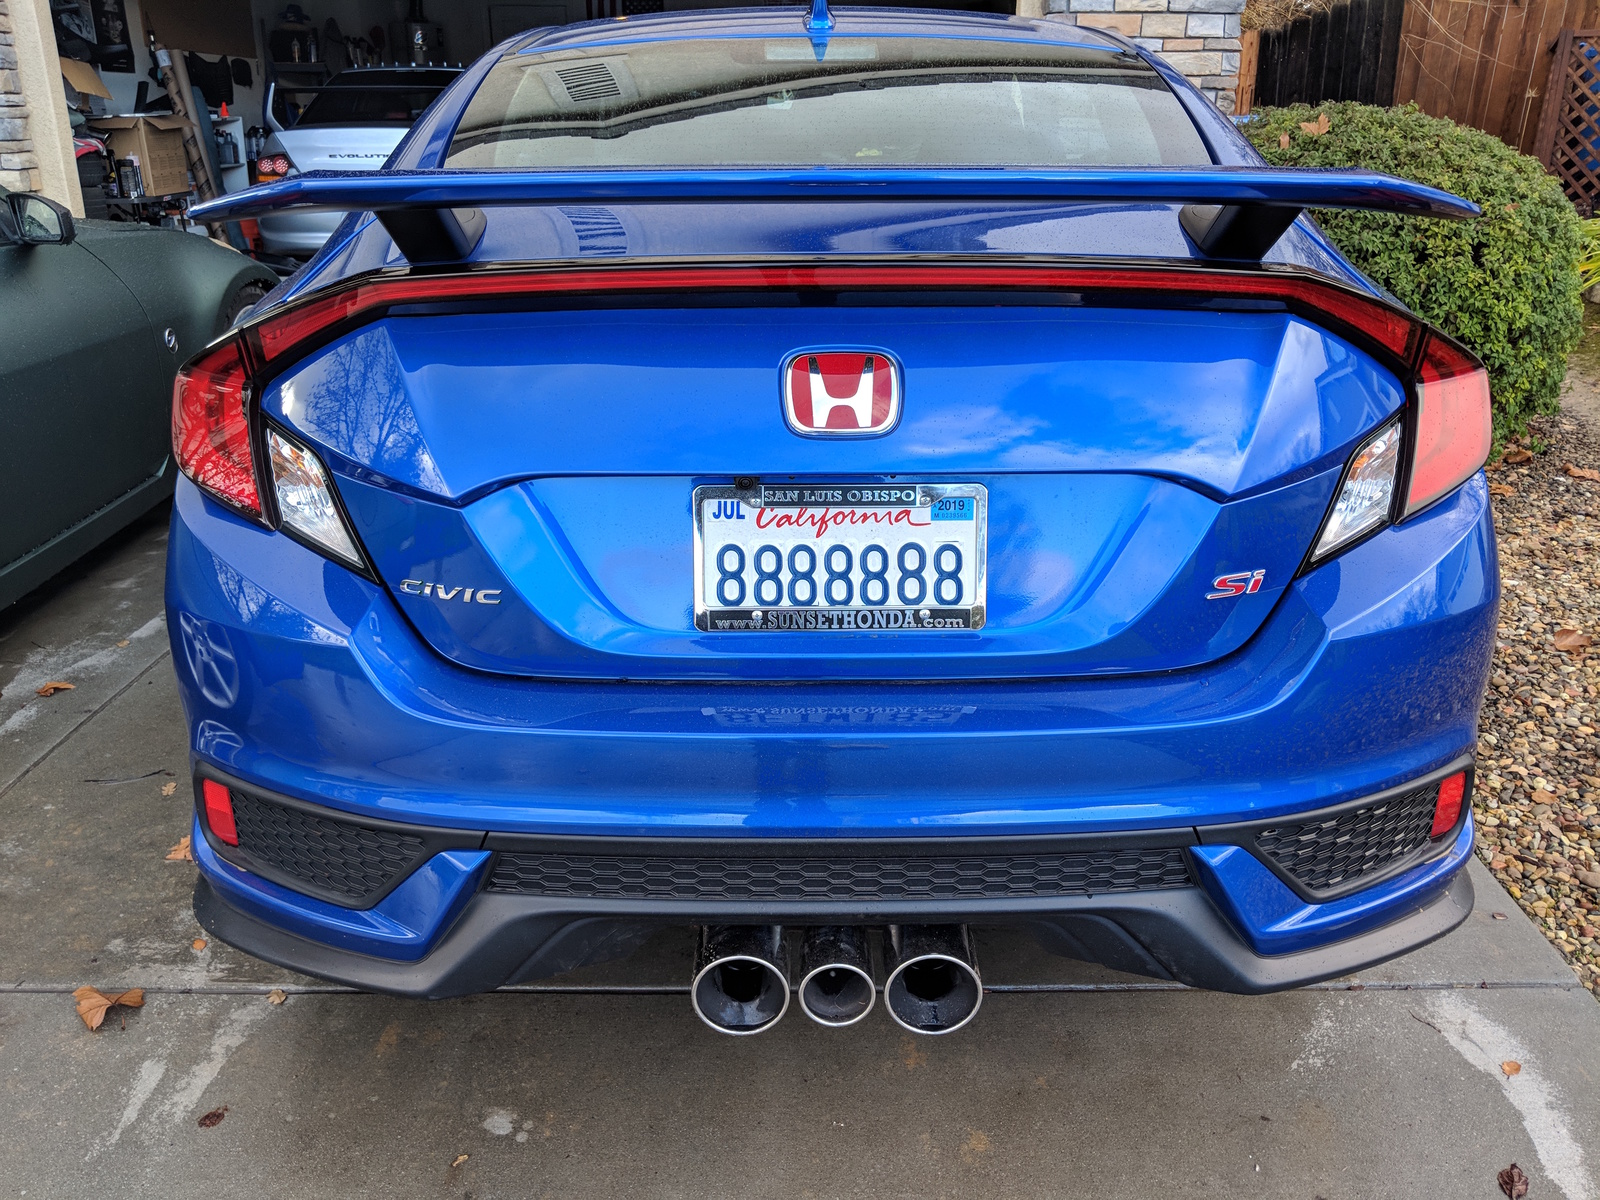 Factory Fk8 Type R Exhaust Installed On Civic Si Coupe 2016 Honda Civic Forum 10th Gen Type R Forum Si Forum Civicx Com